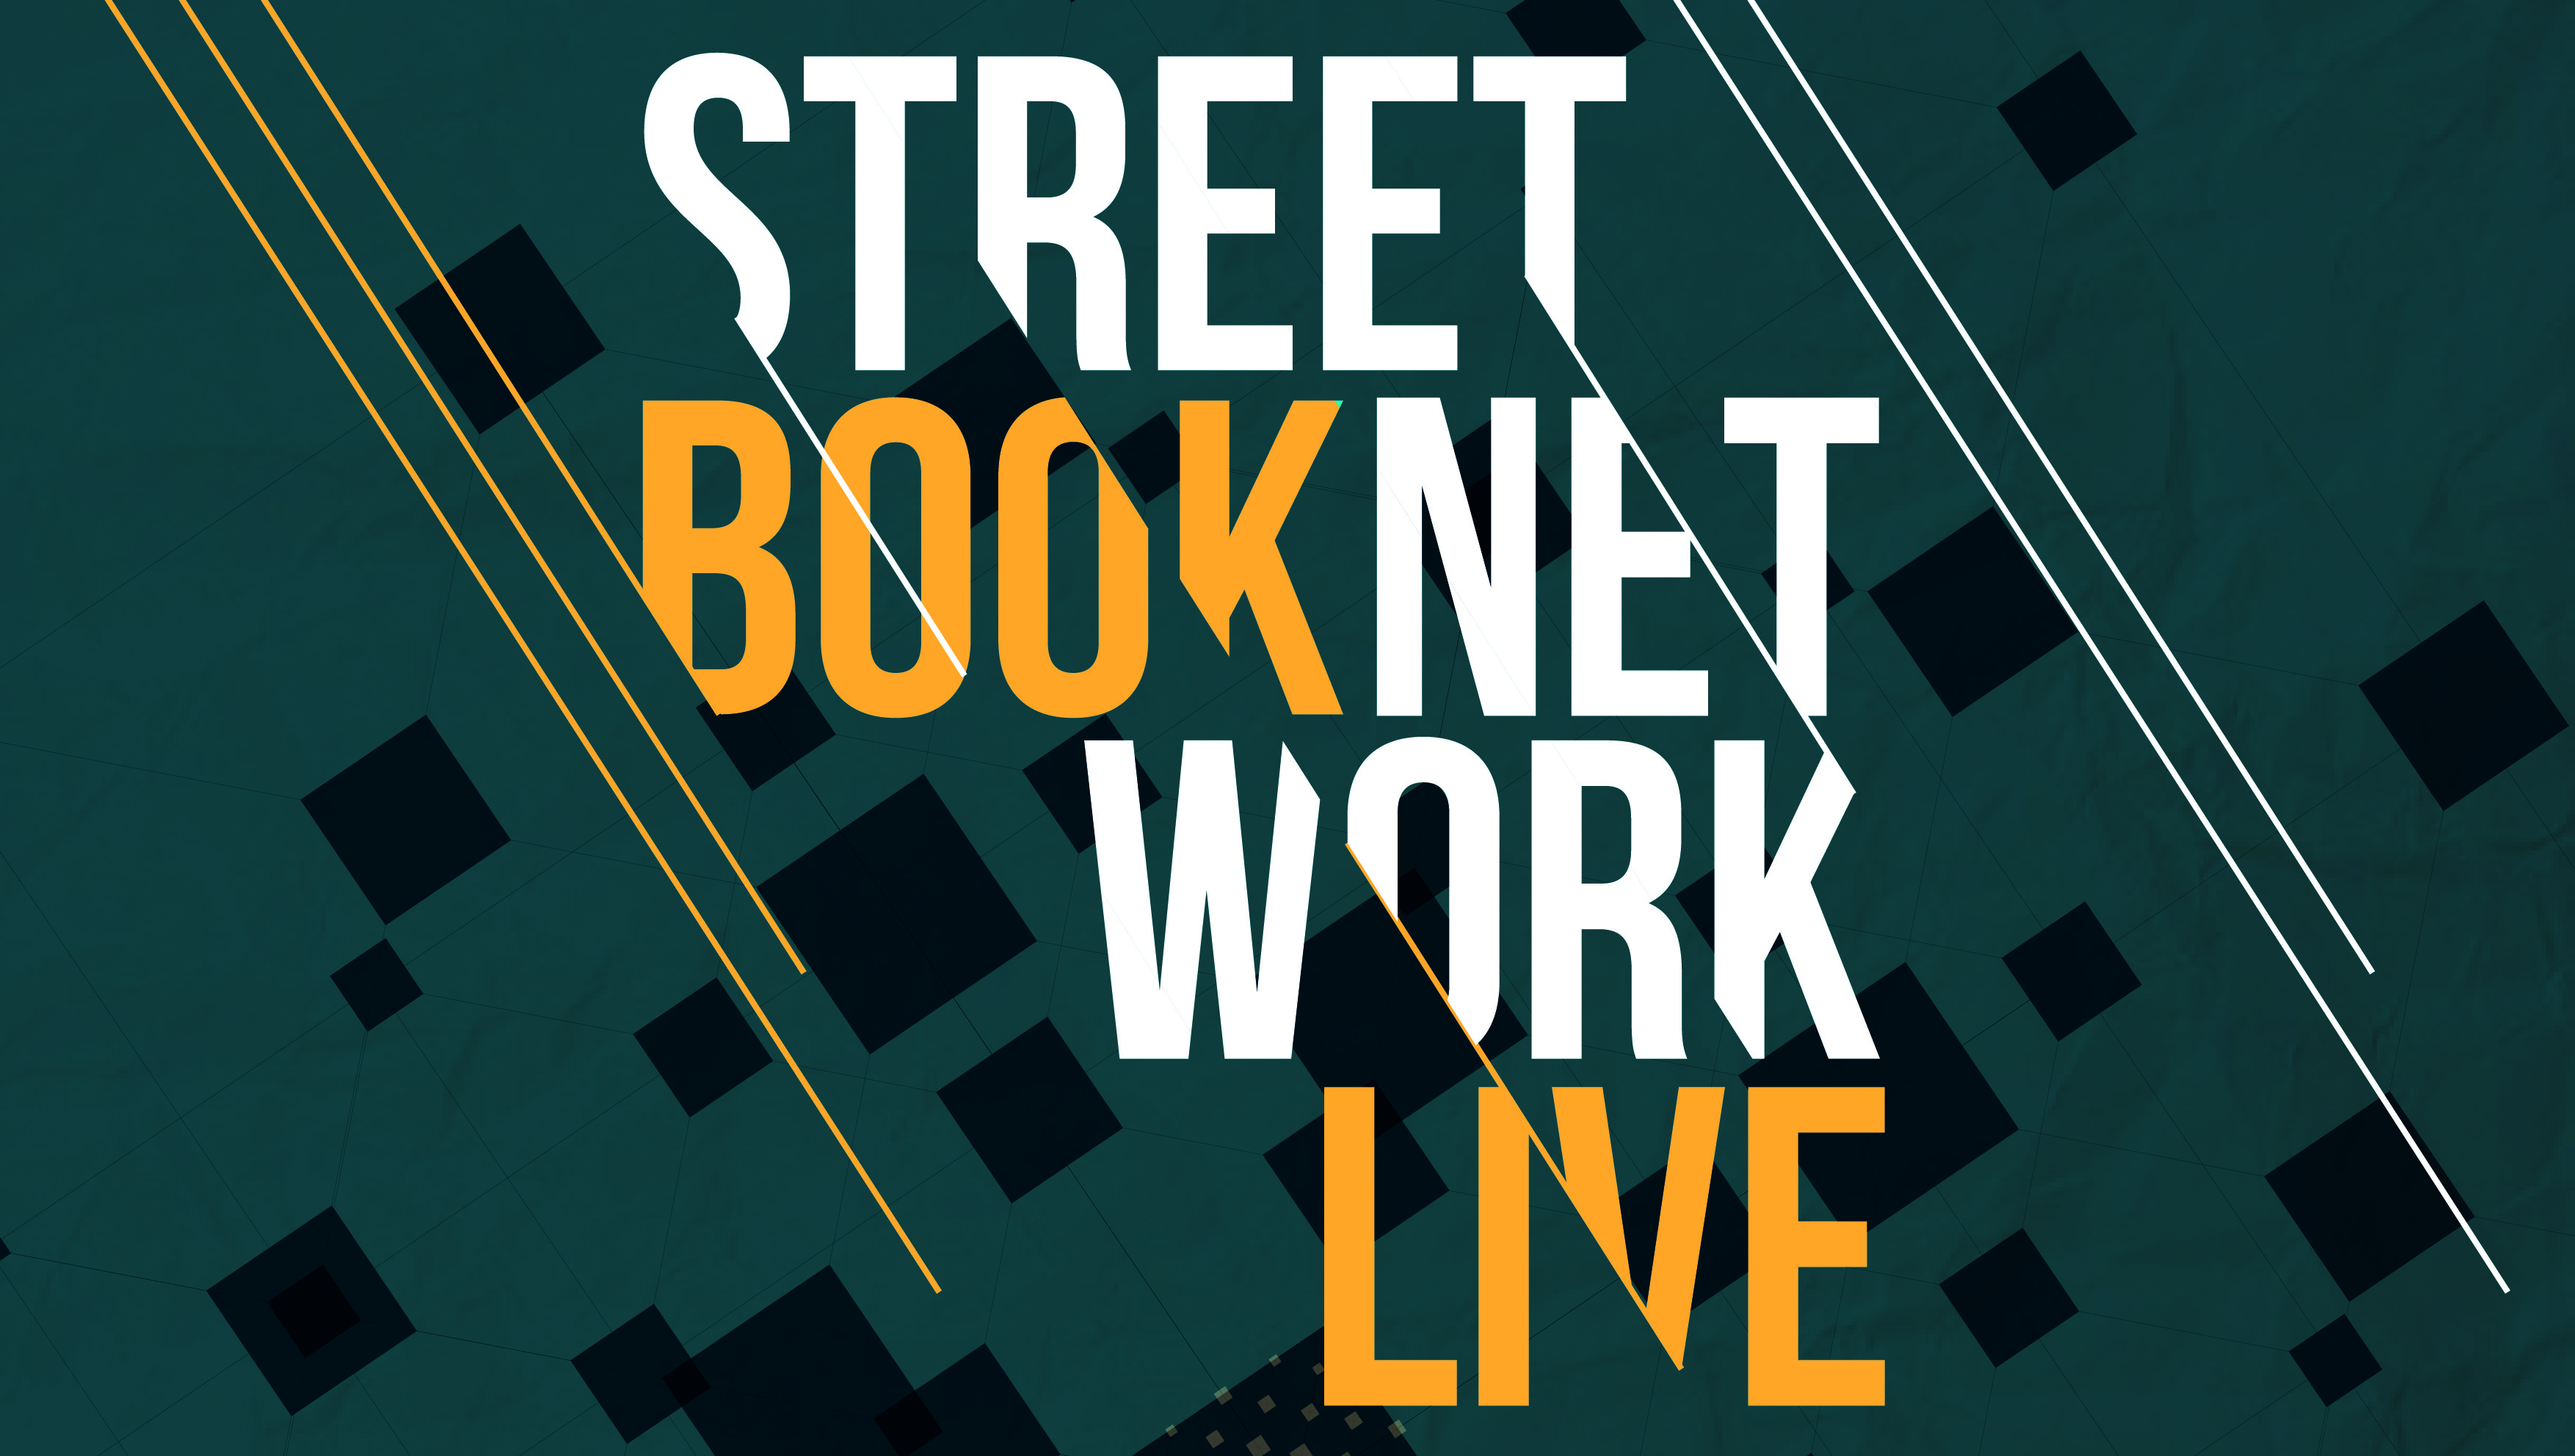 StreetBook Network Live – Art Gathering || 19 novembre 2015 @ Multiverso (FIRENZE)